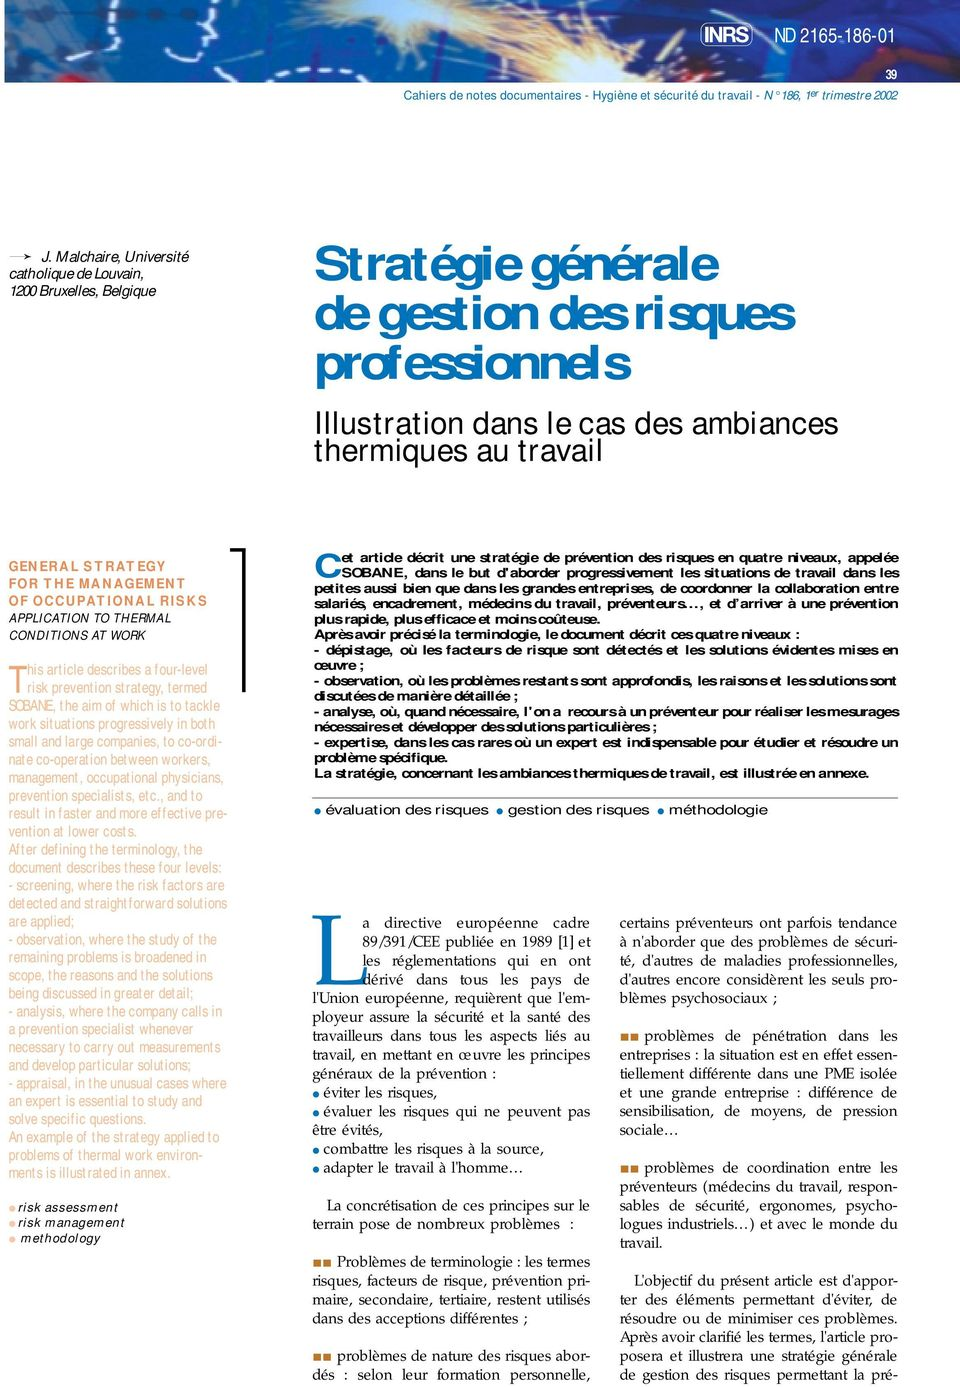 STRATEGY FOR THE MANAGEMENT OF OCCUPATIONAL RISKS APPLICATION TO THERMAL CONDITIONS AT WORK This article describes a four-level risk prevention strategy, termed SOBANE, the aim of which is to tackle